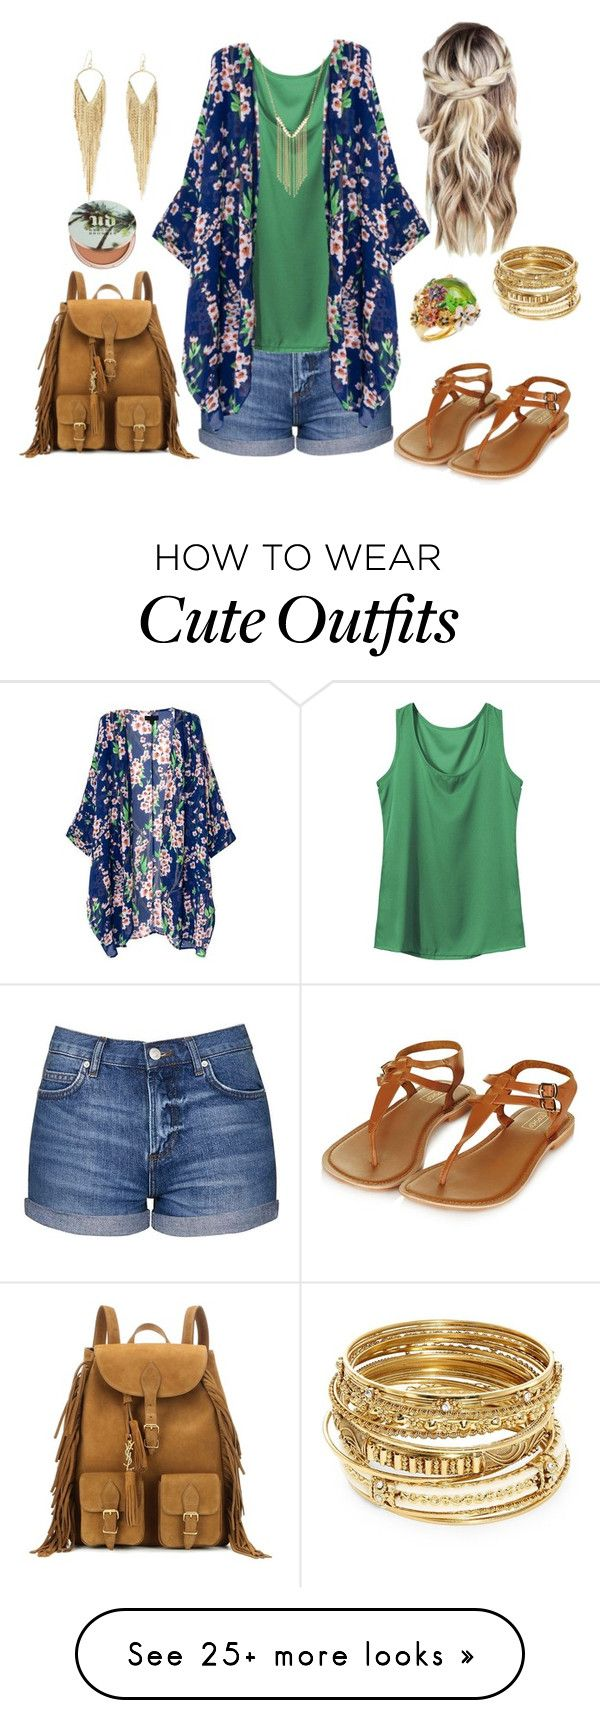 """""""Cute Outfit!"""" by jamielojordan on Polyvore featuring Topshop, ABS by Allen Schwartz, Gemelli, Kenneth Jay Lane, Jules Smith, Yves Saint Laurent and Urban Decay"""